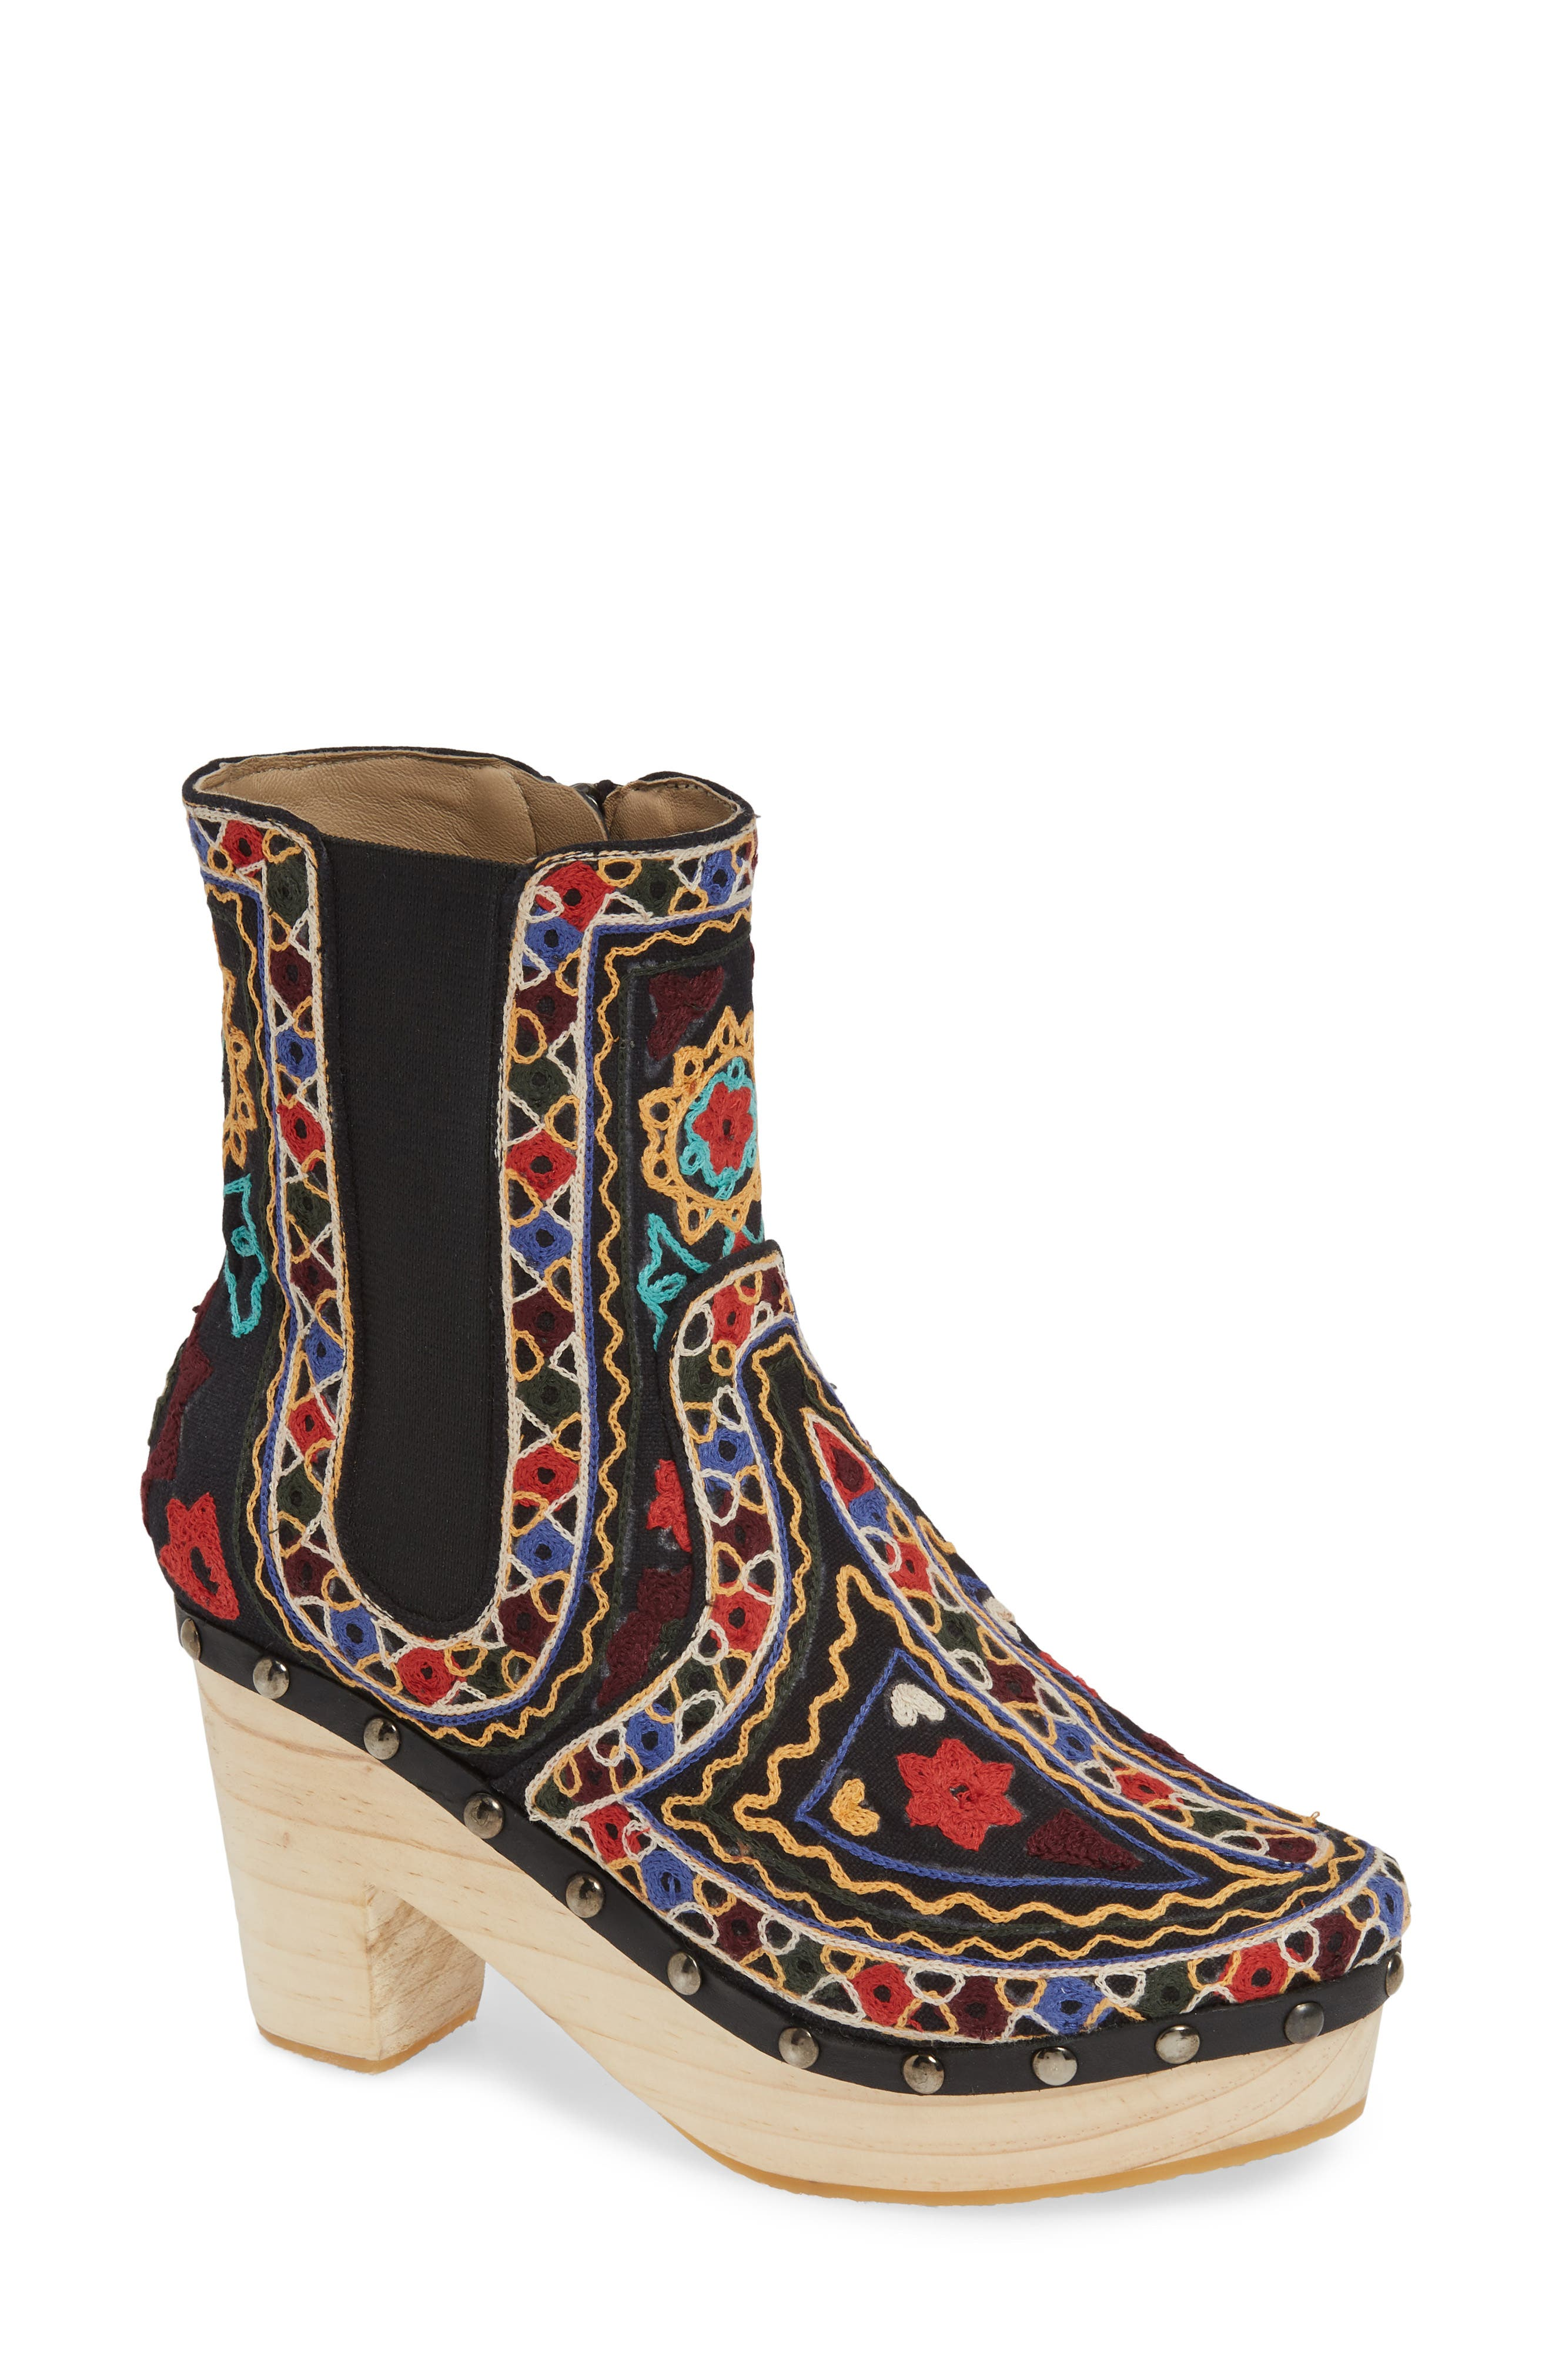 FREE PEOPLE,                             West Johanna Clog Bootie,                             Main thumbnail 1, color,                             BLACK EMBROIDERED FABRIC